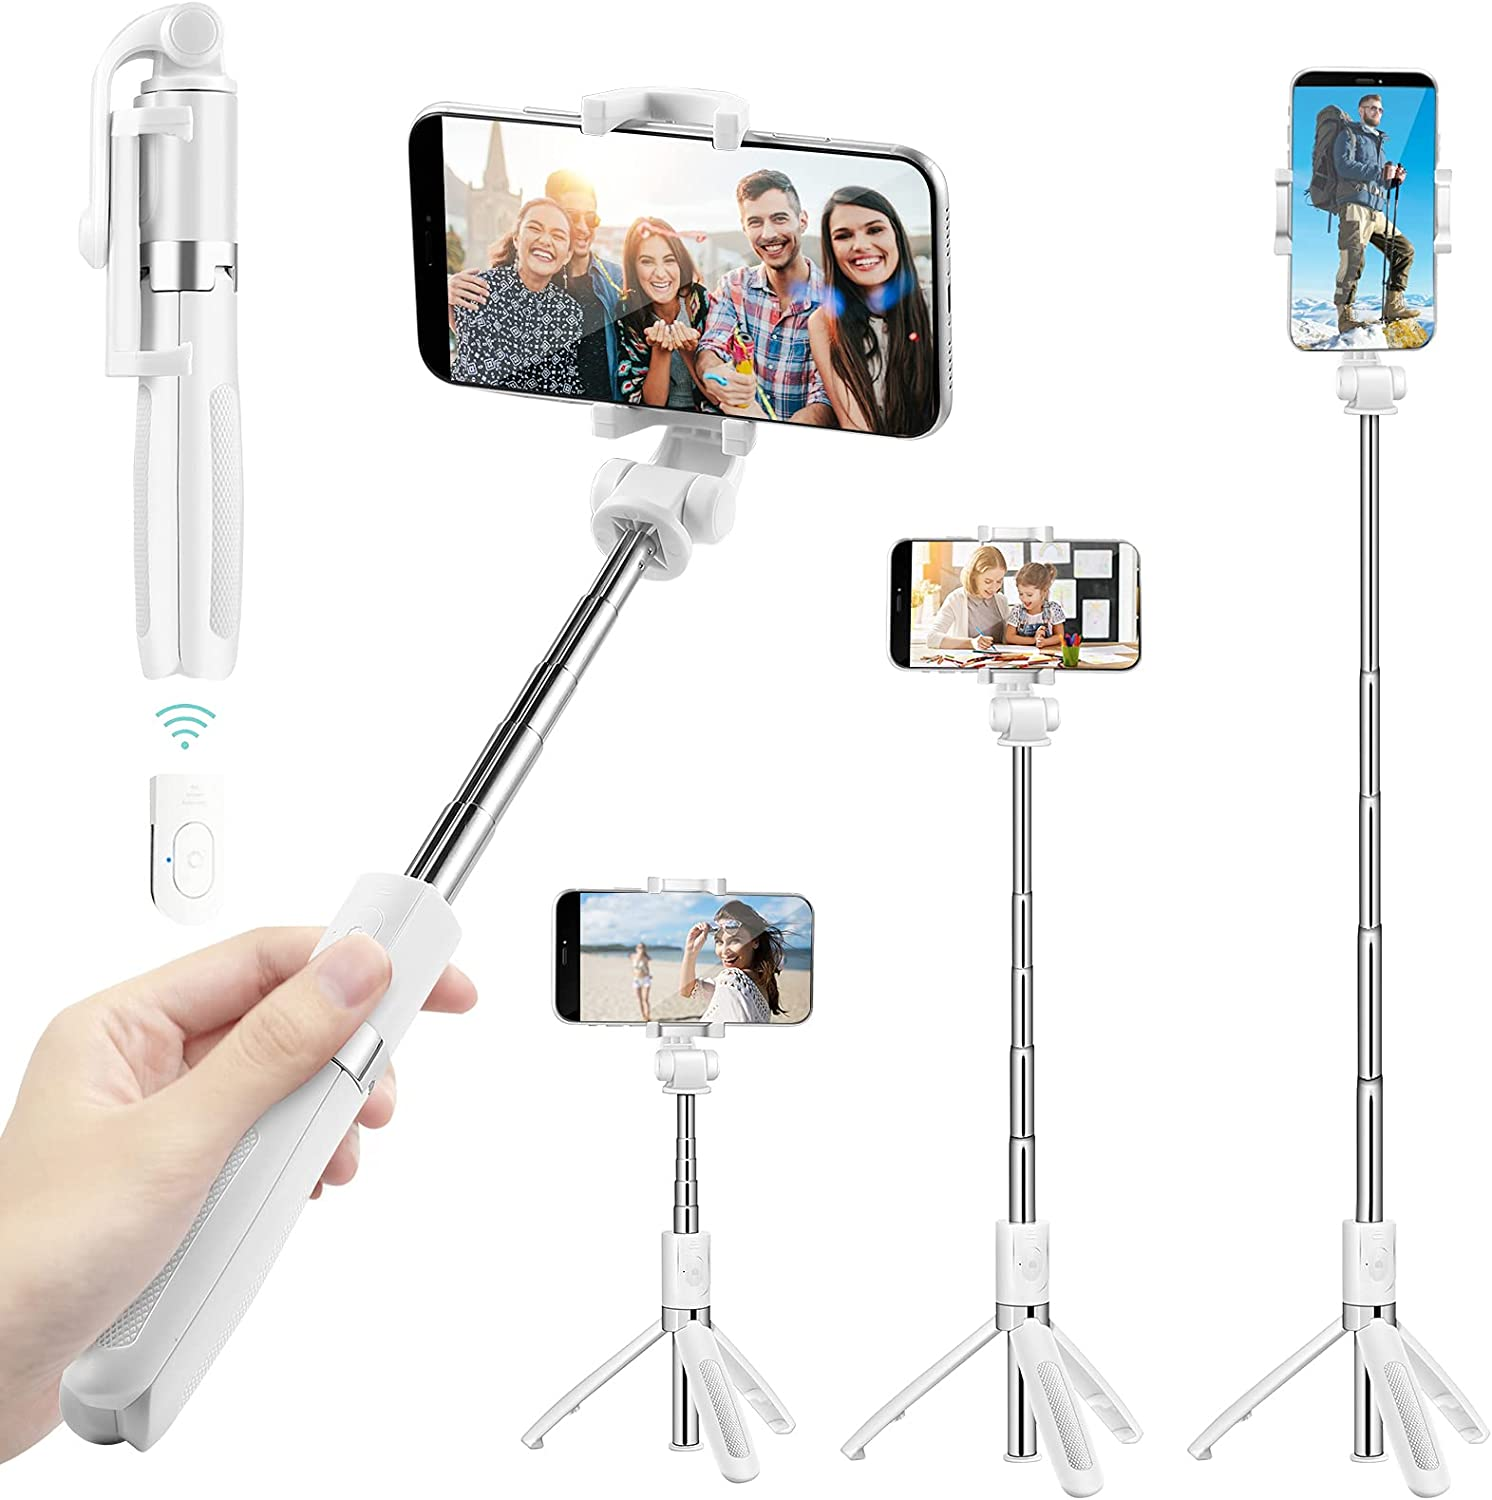 Selfie Stick Tripod for iPhone, Cell Phone Tripod Stand with Bluetooth Wireless Remote, 3 in 1 Portable Extendable Lightweight Tripod Compatible withiPhone/Samsung/Huawei and More (White)